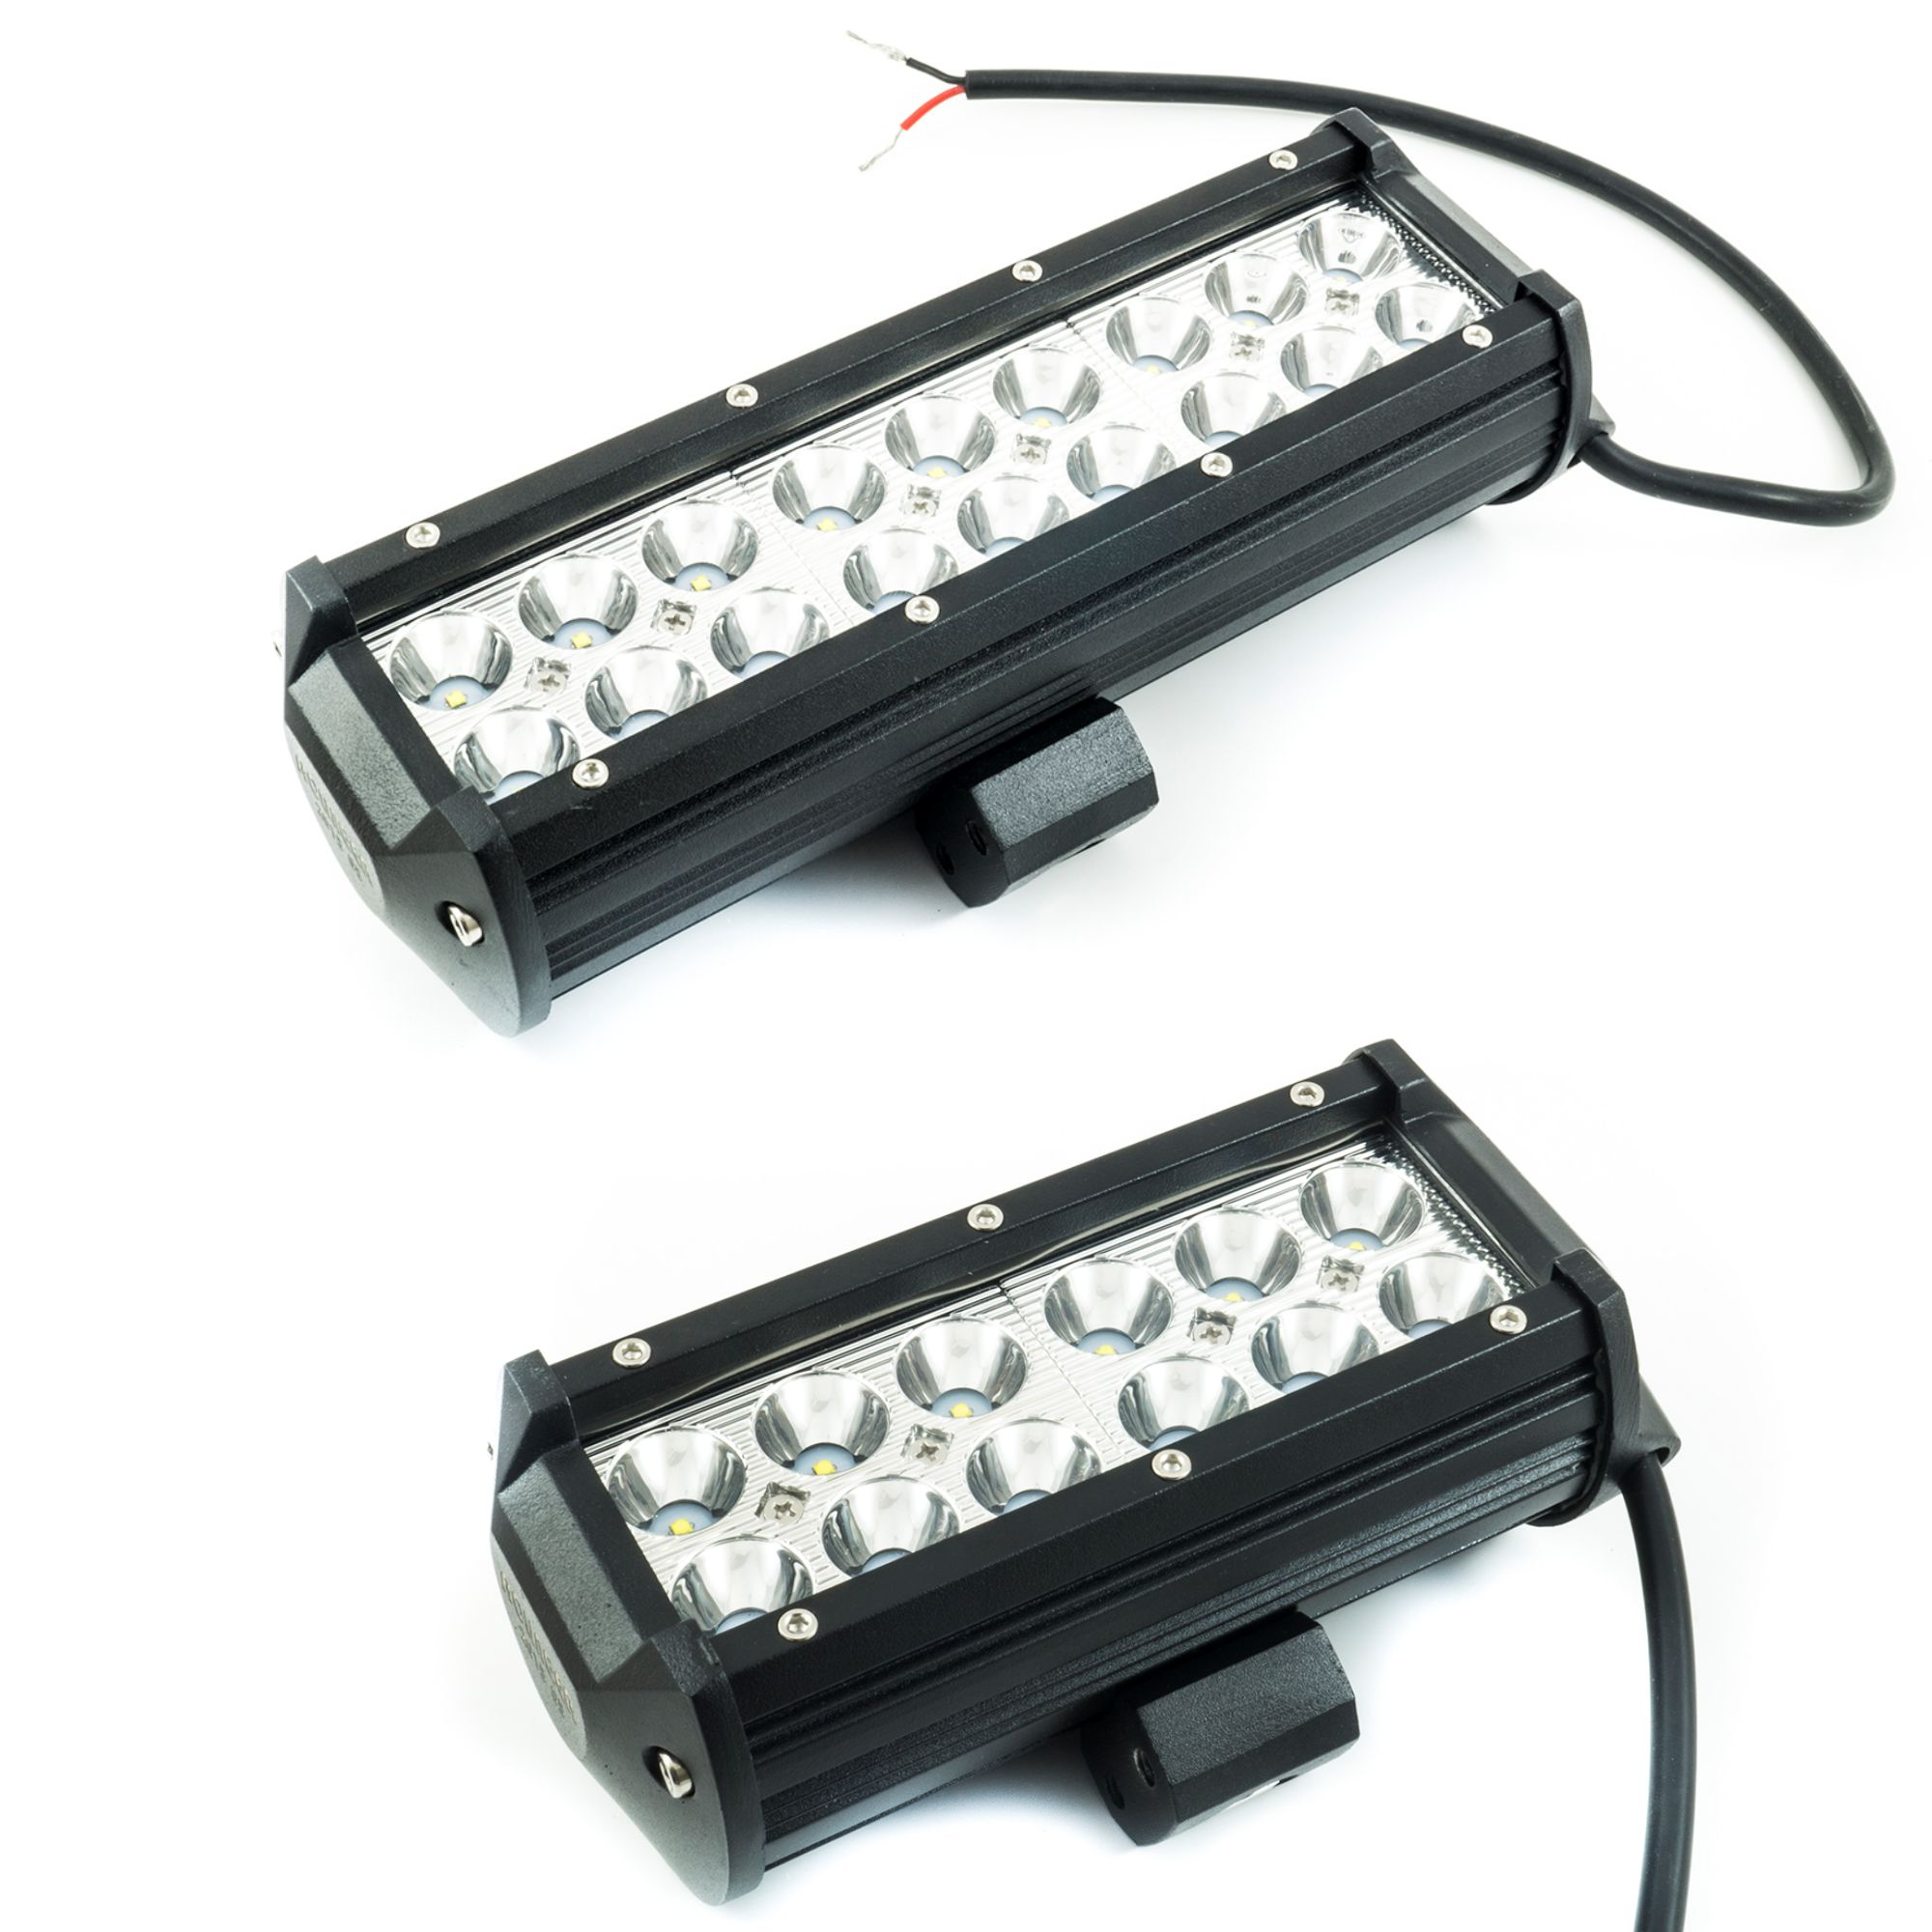 FARO BARRA SUPPLEMENTARE 18 LED 54W AUTO FUORISTRADA SUV